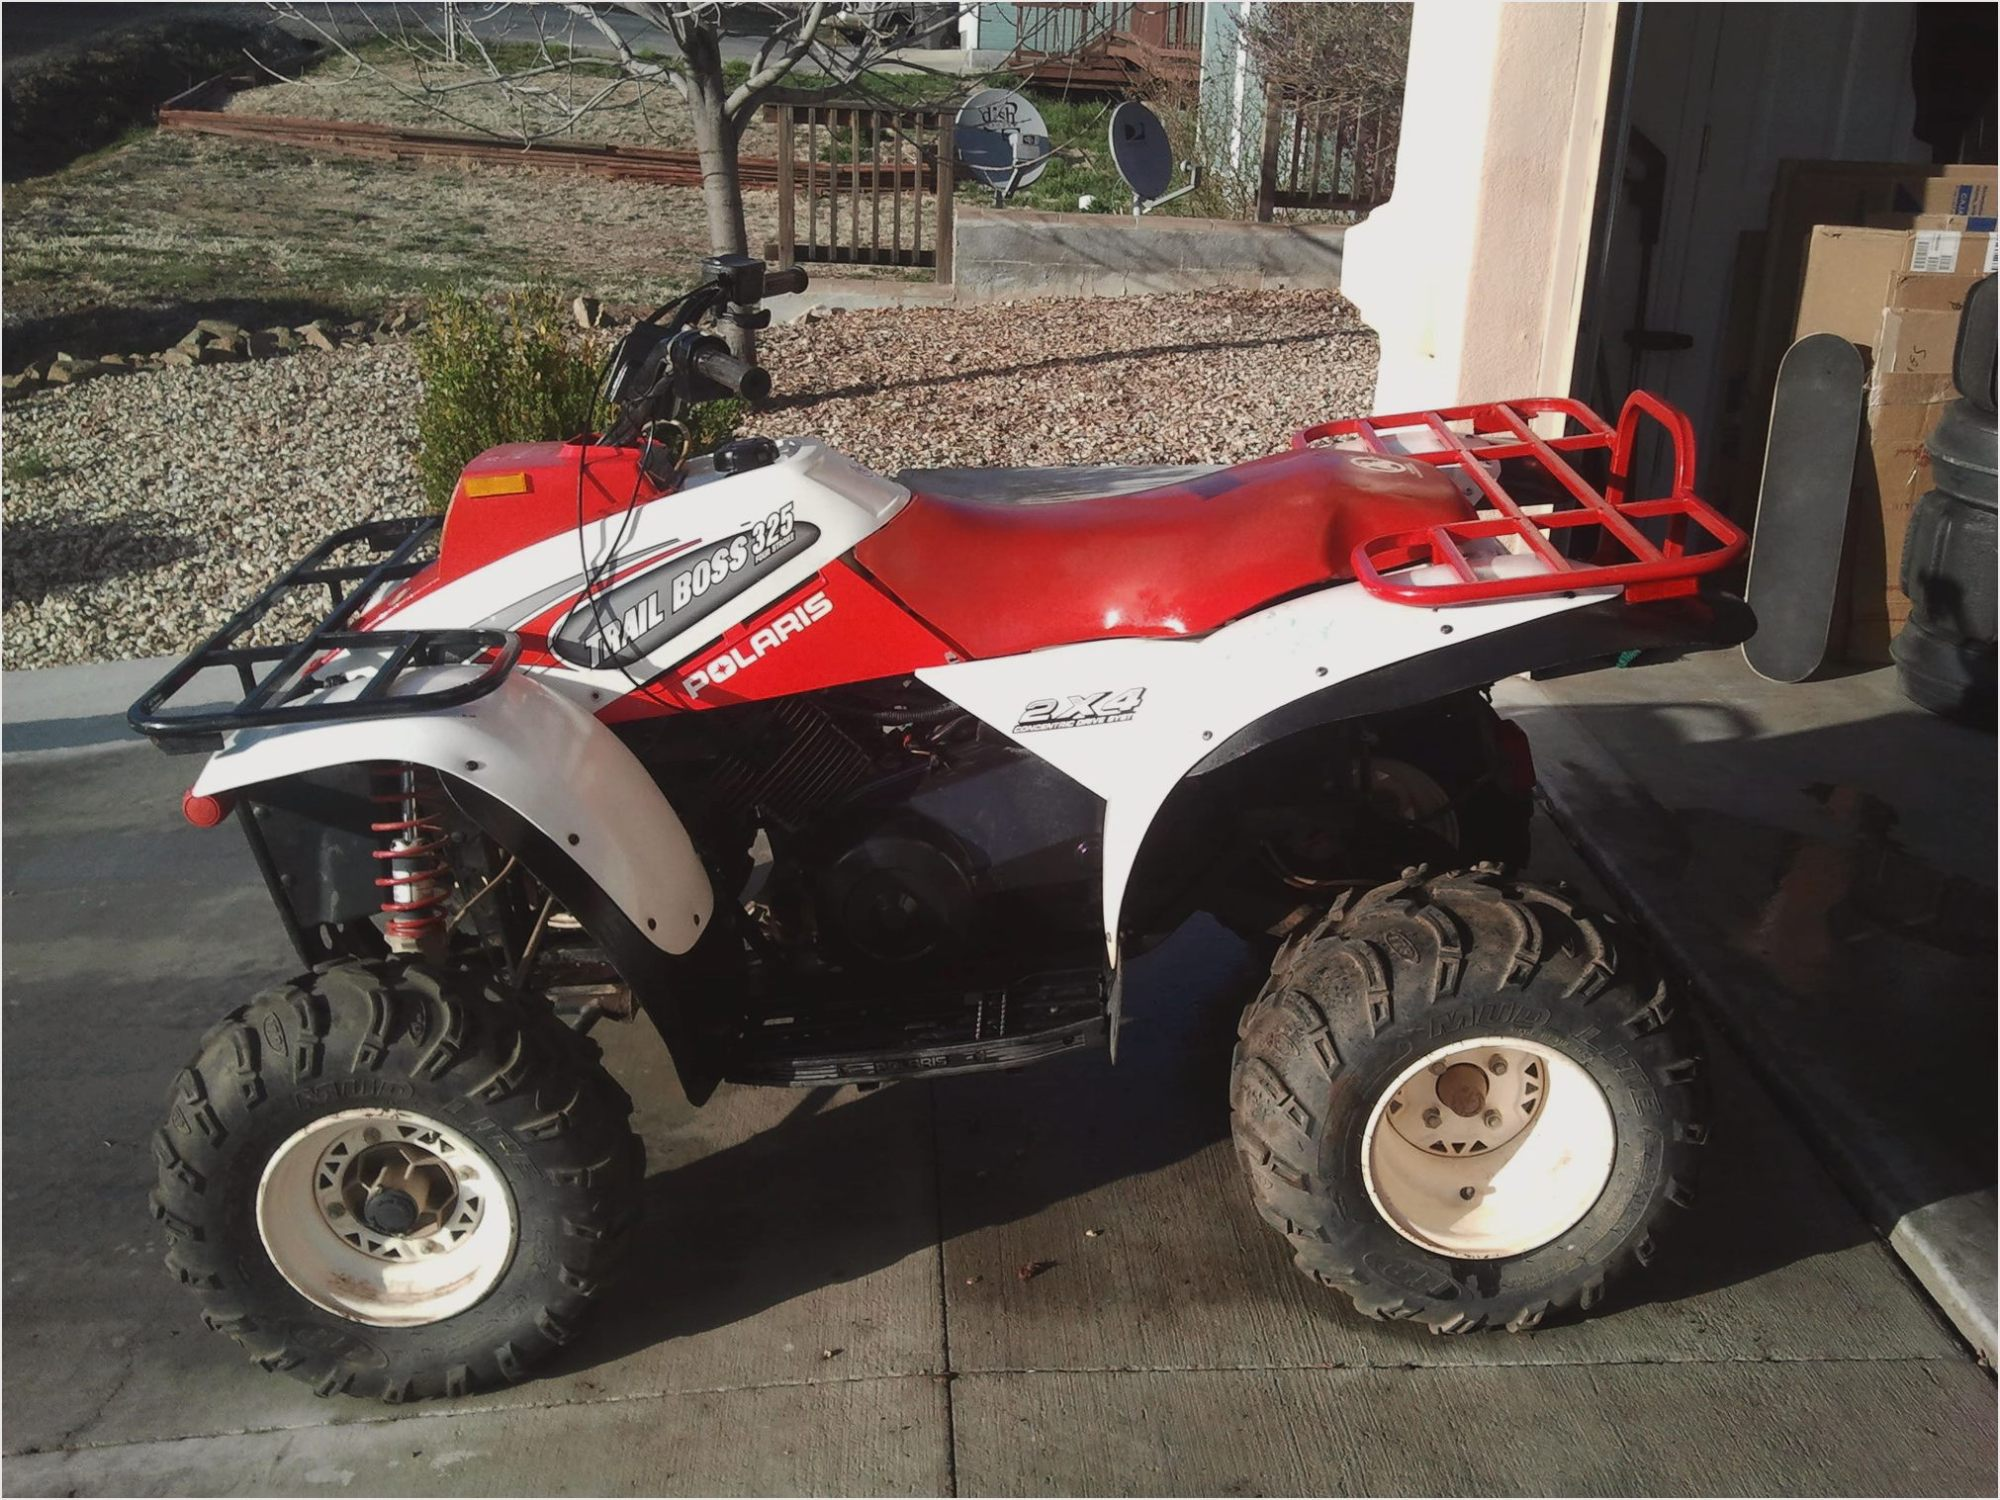 hight resolution of polaris trail boss 330 pics specs and list of seriess by year rh onlymotorbikes com polaris wiring diagram trail boss 330 2005 polaris wiring diagram trail